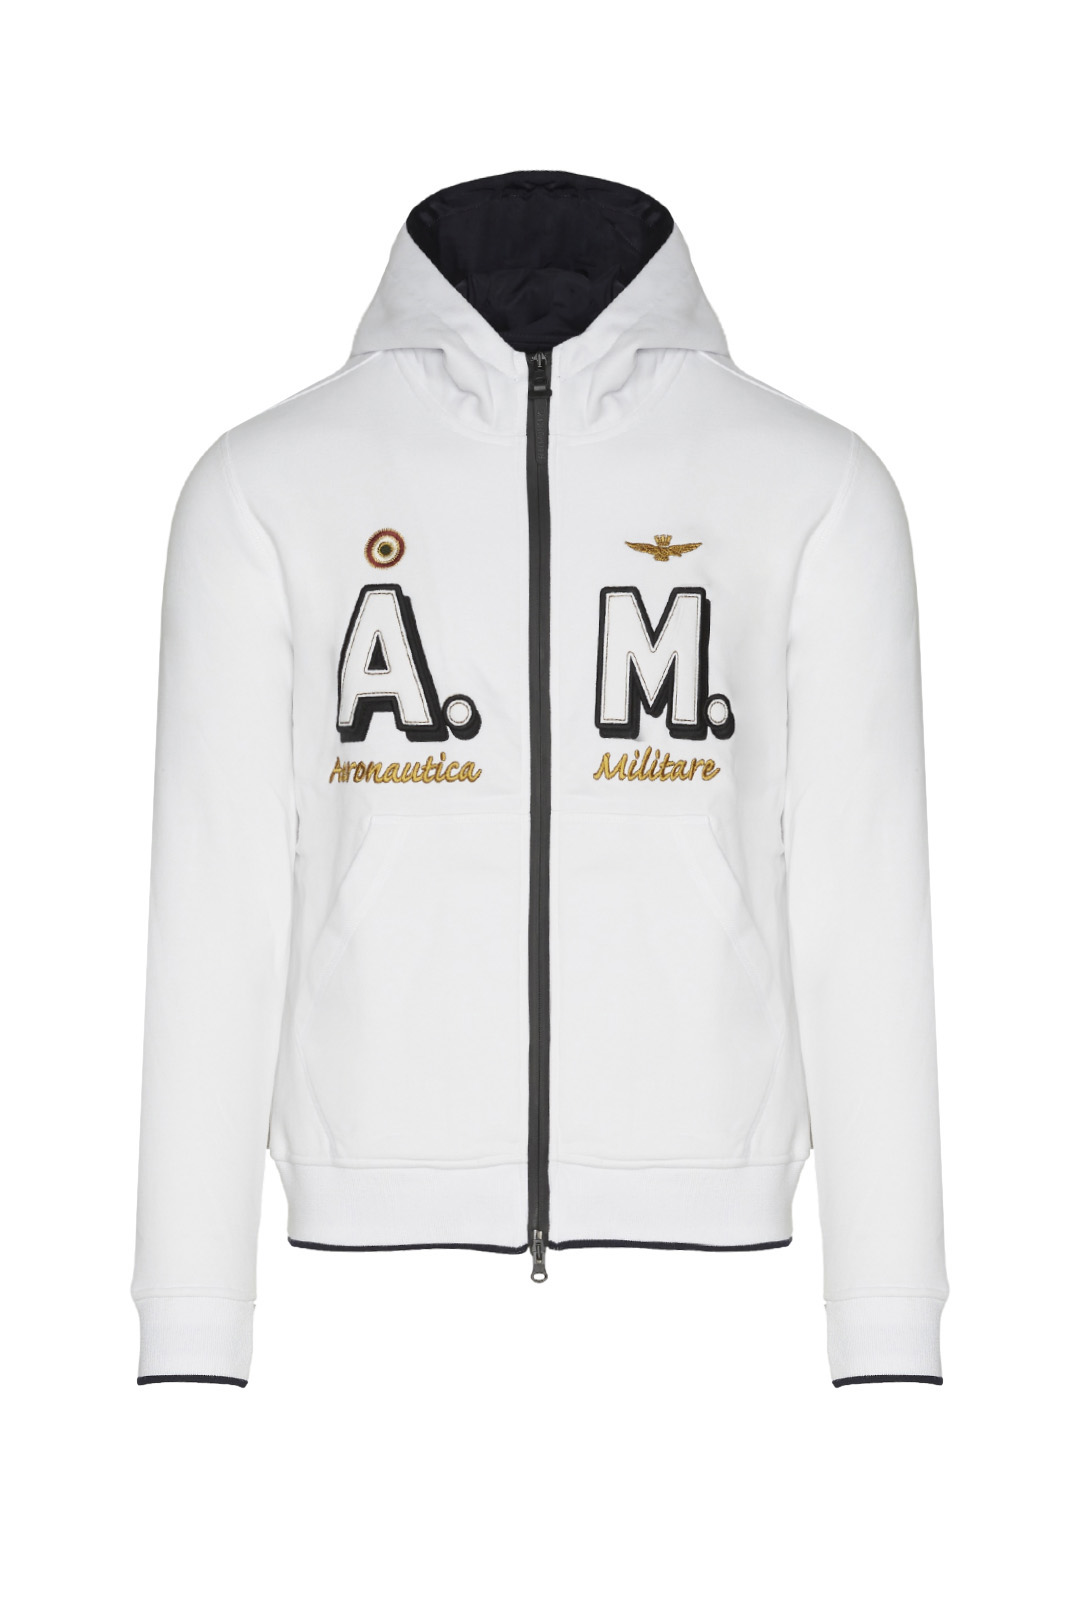 Iconic gauzed cotton AM hoodie